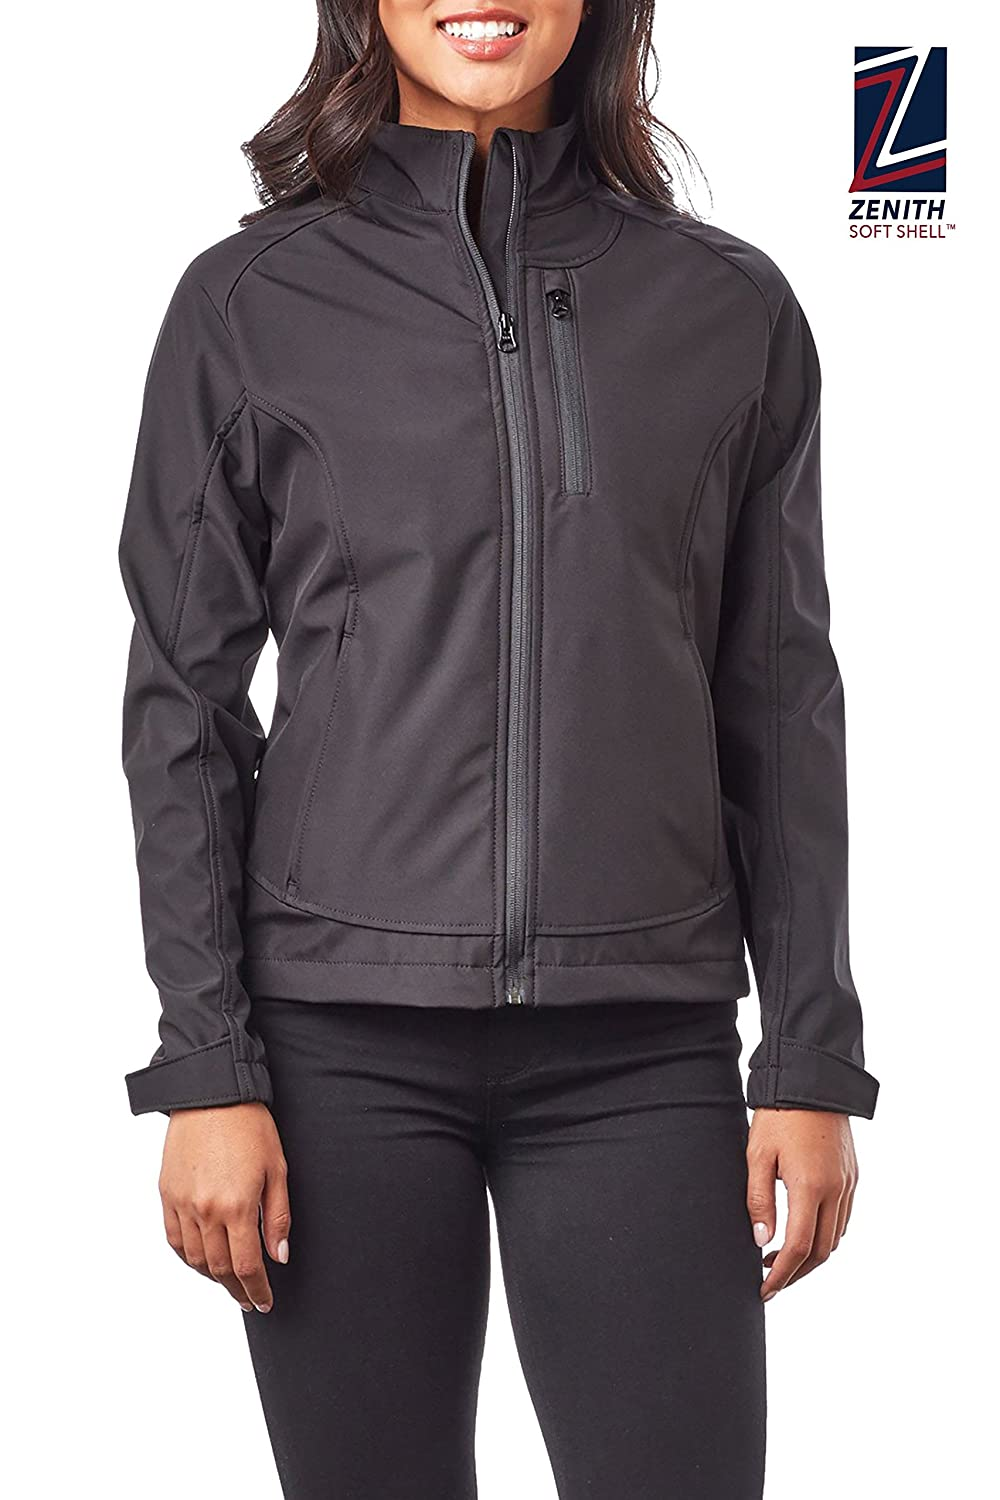 e535b2571 Boathouse Sports The Women's Equinox Jacket In Zenith Soft Shell at Amazon Women's  Clothing store: